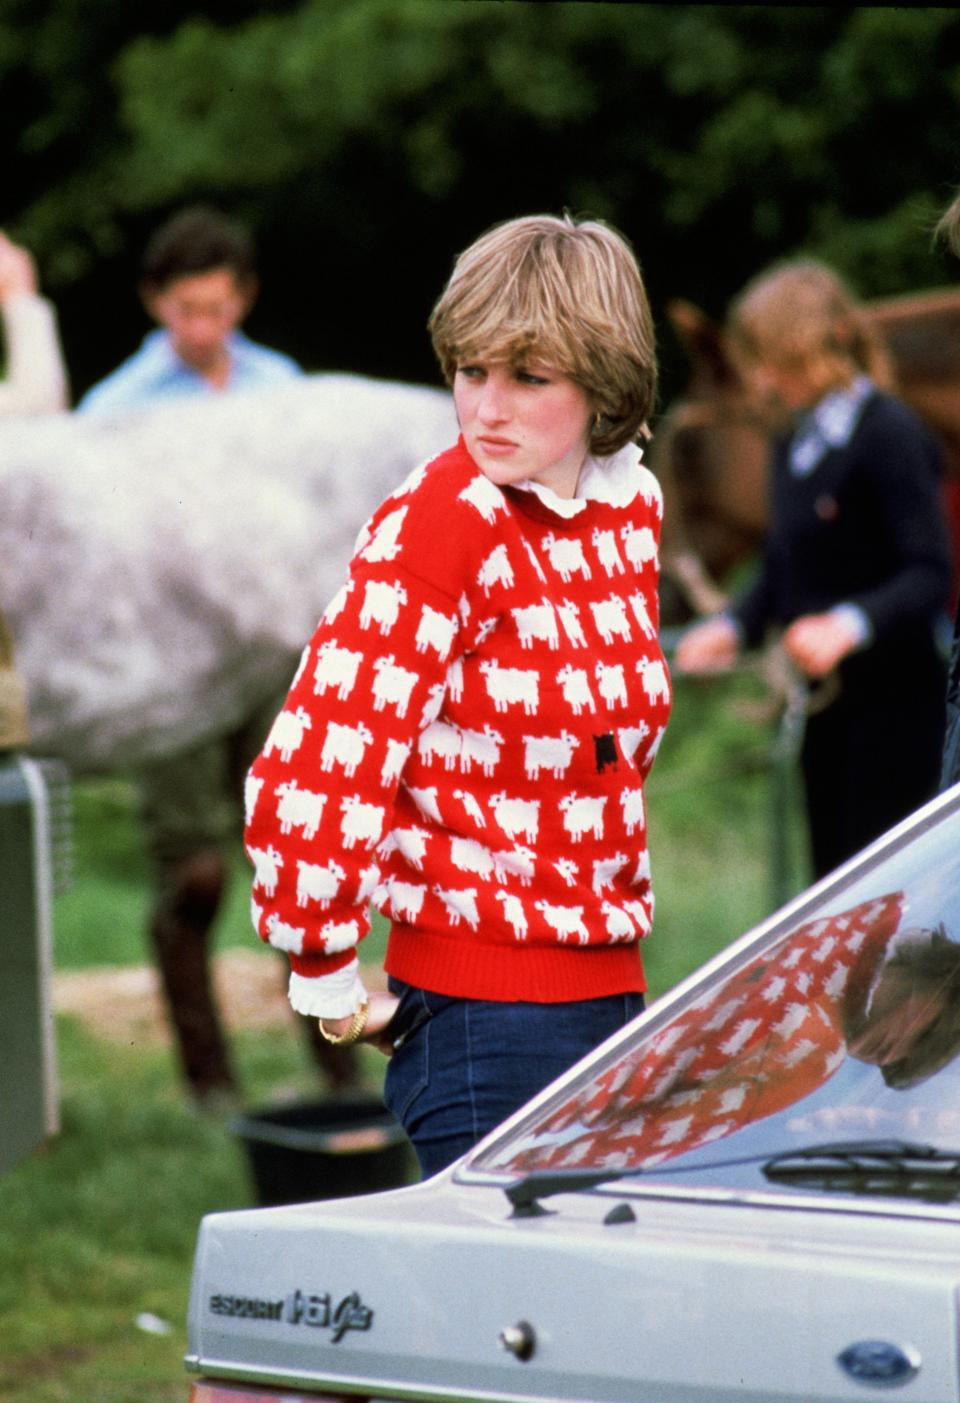 Diana, Princess of Wales wearing 'Black sheep' wool jumper by Warm and Wonderful and pie-crust shirt to Windsor Polo, June 1981. (Getty Images)